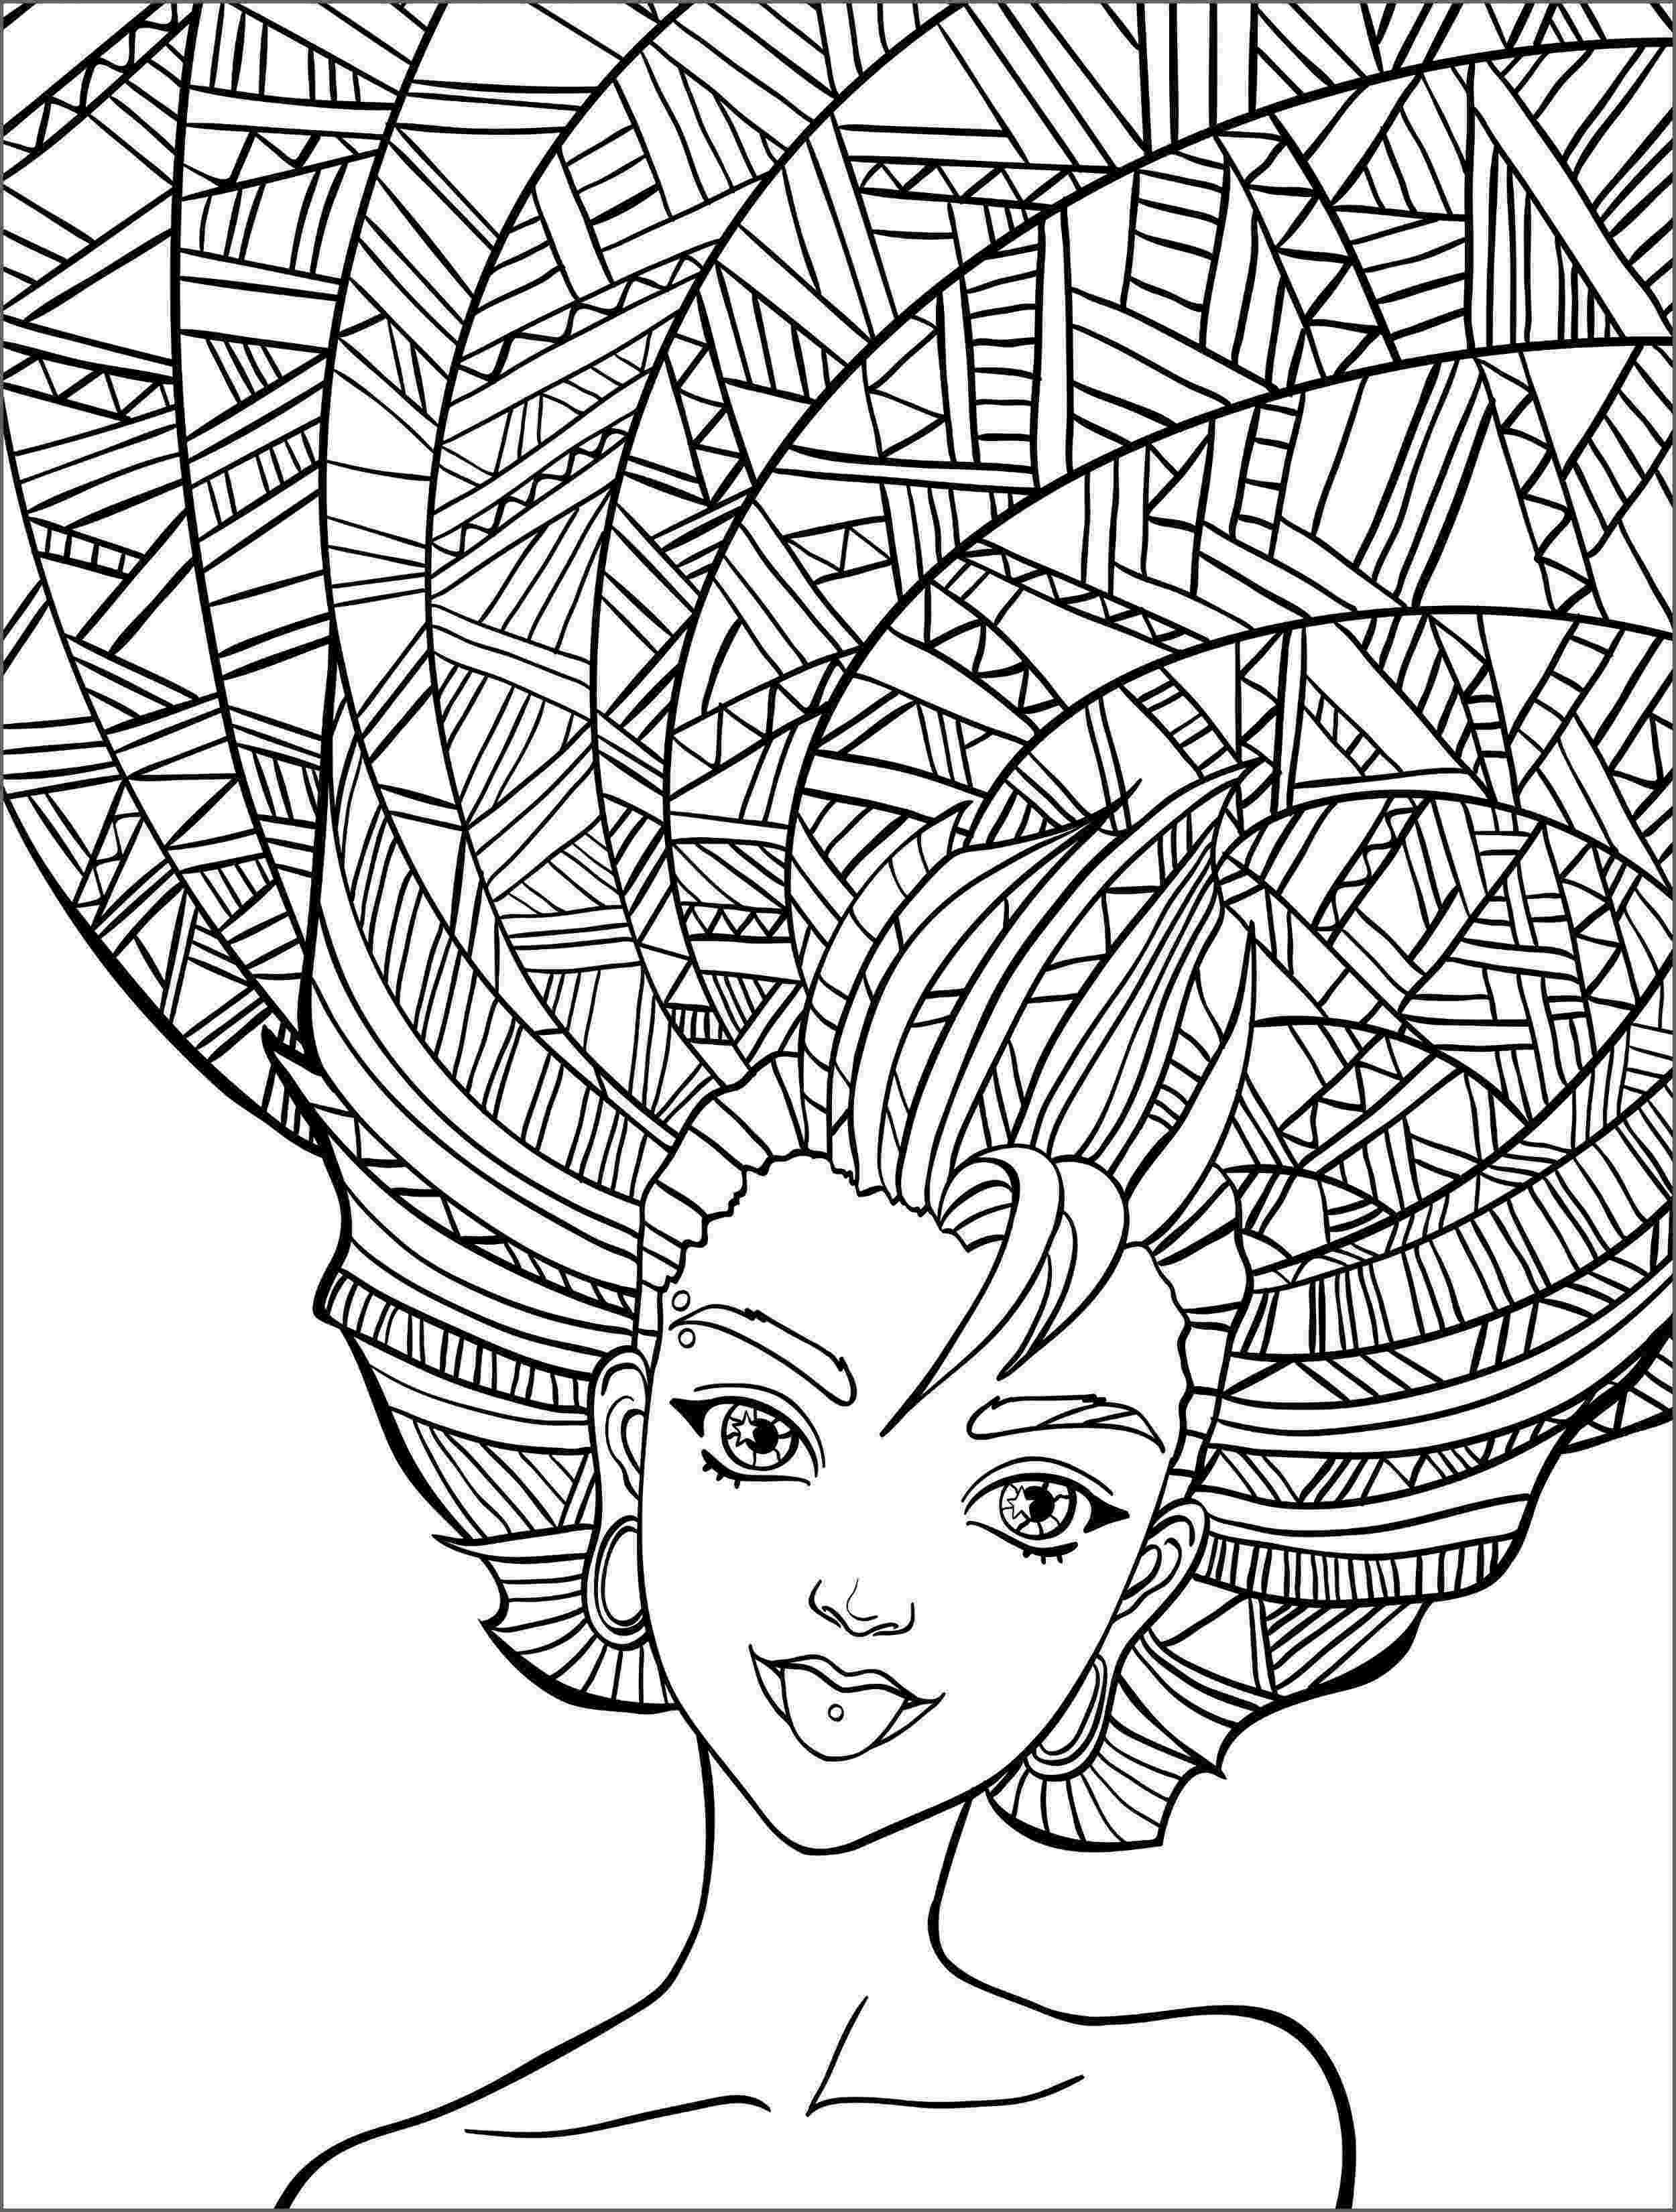 coloring book for adults online printable coloring pages for adults 15 free designs for online adults coloring book